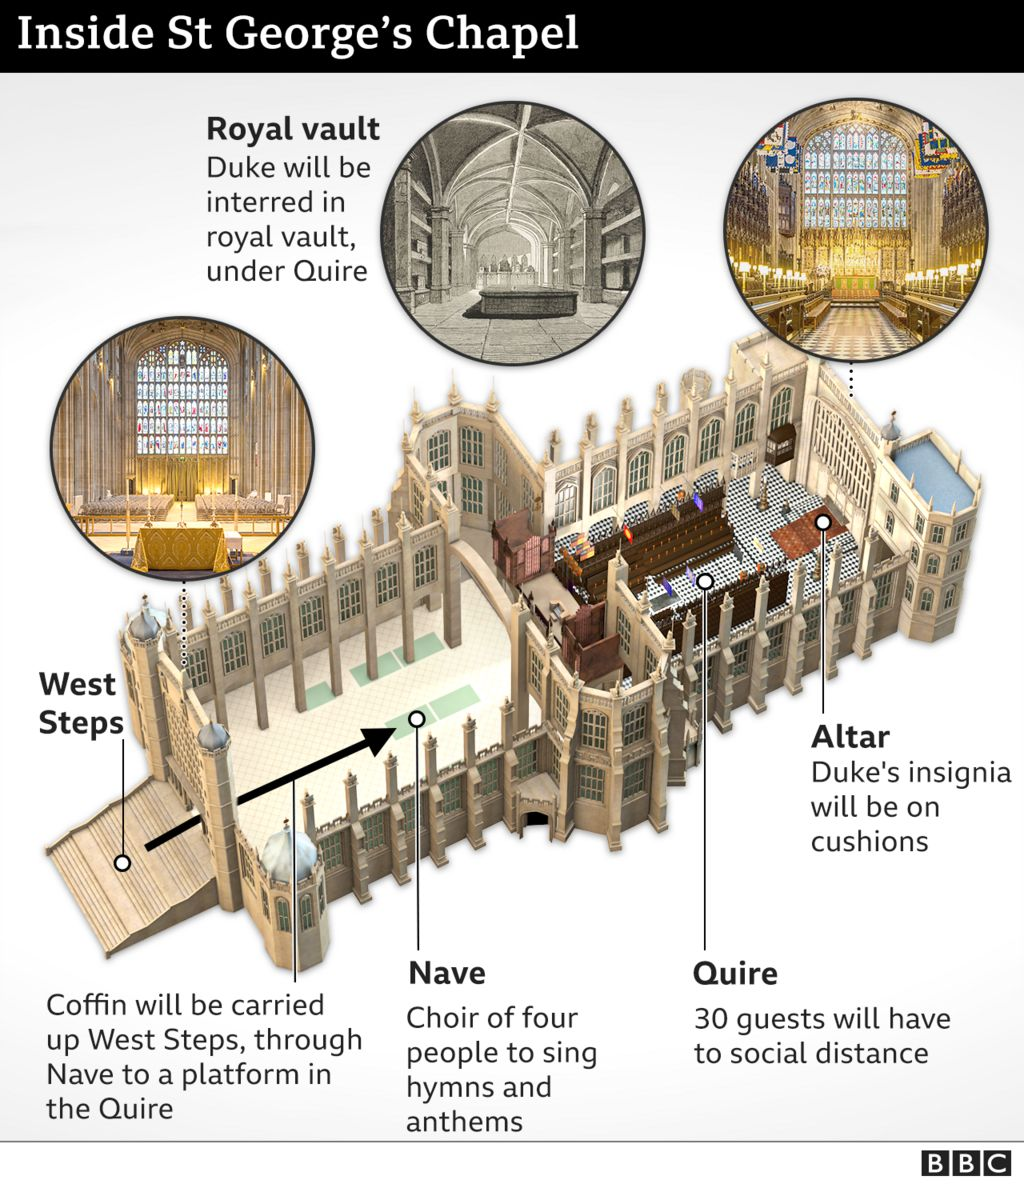 Infographic showing the inside of St George's Chapel, Windsor